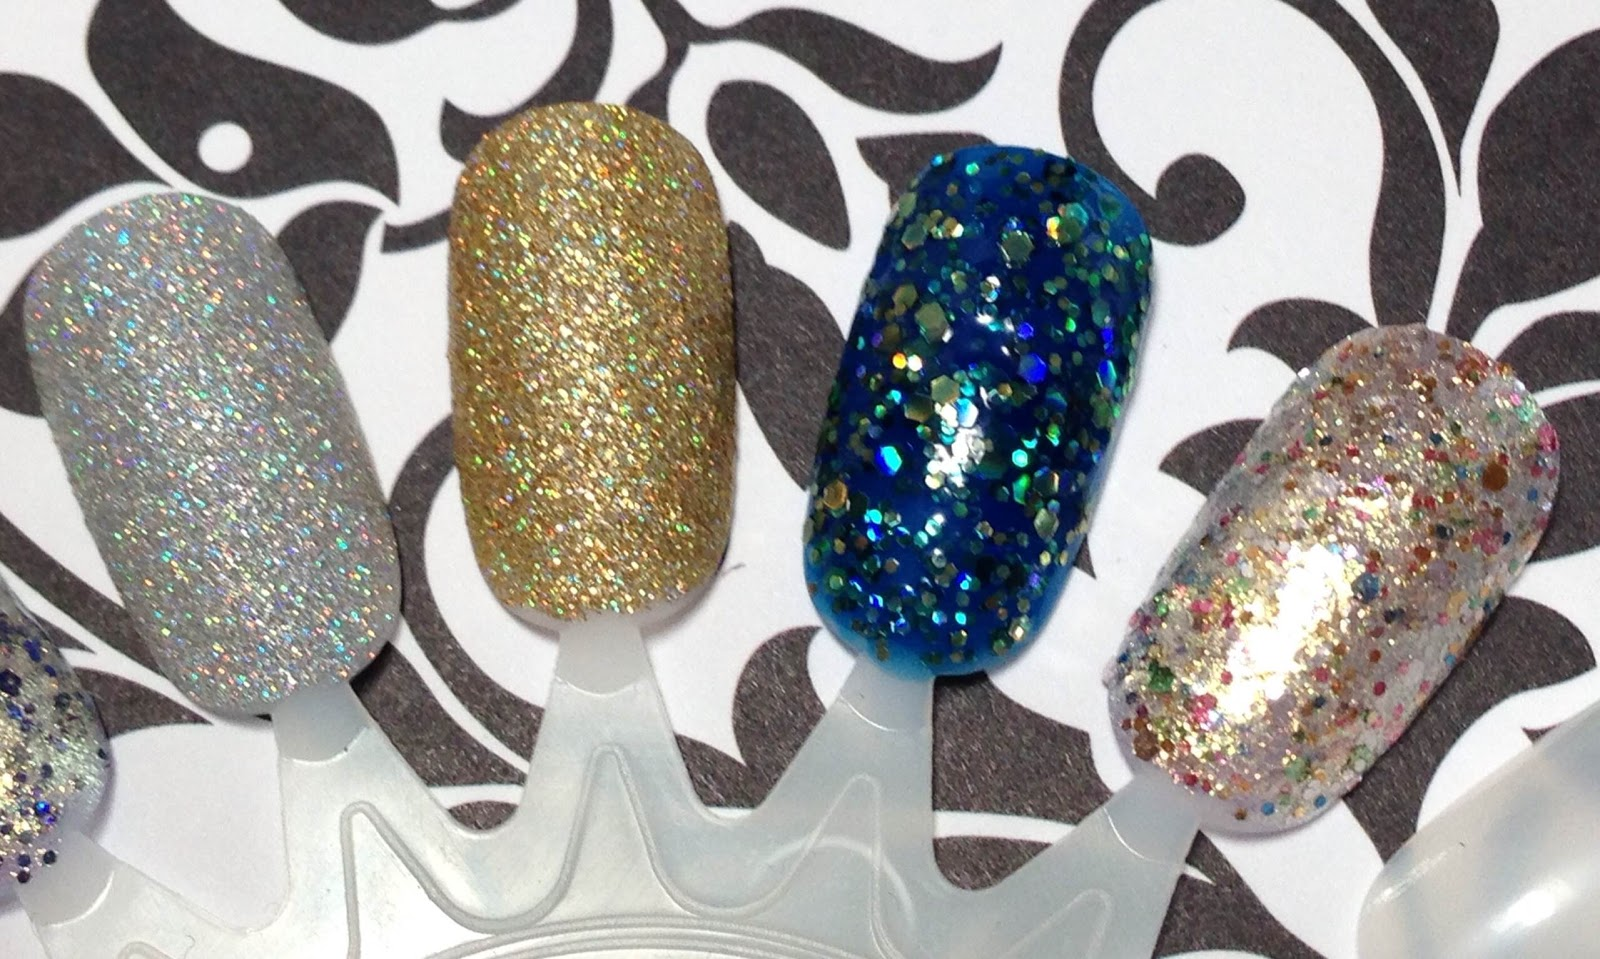 China Glaze Glistening Snow, China Glaze Angel Wings, Formula X Outburst, Formula X Light My Fire